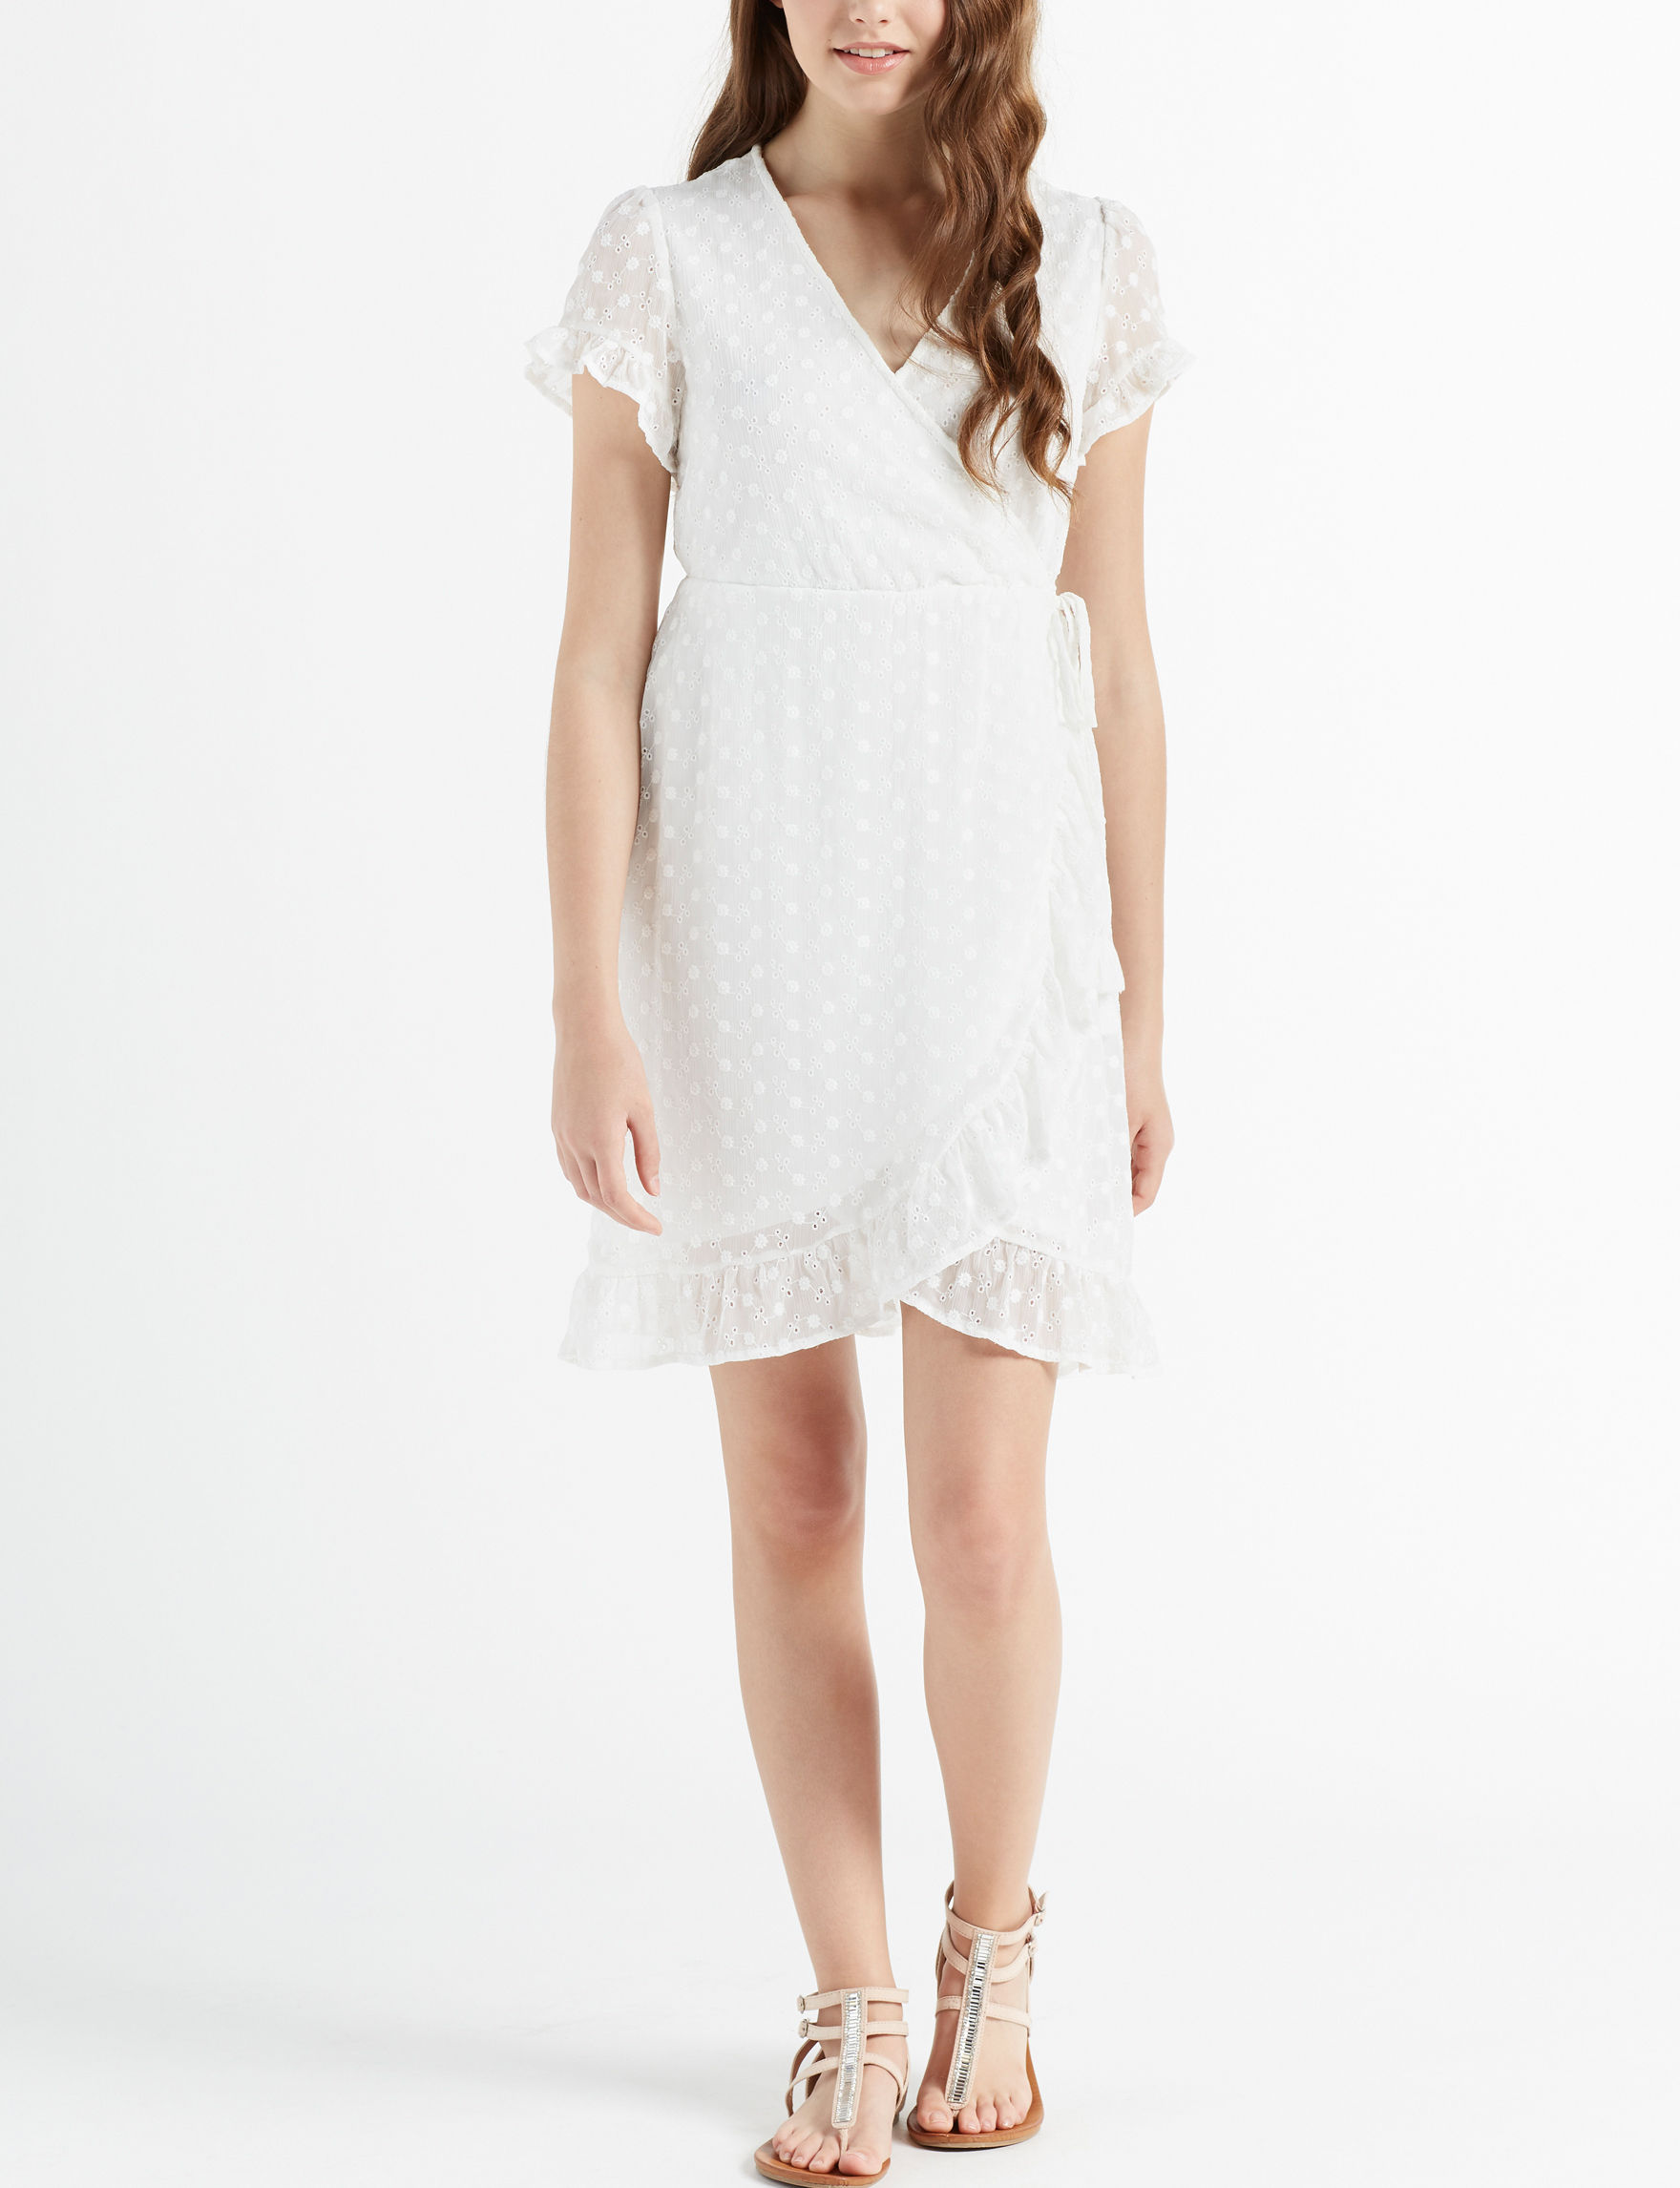 Inspired Hearts White Everyday & Casual Fit & Flare Dresses